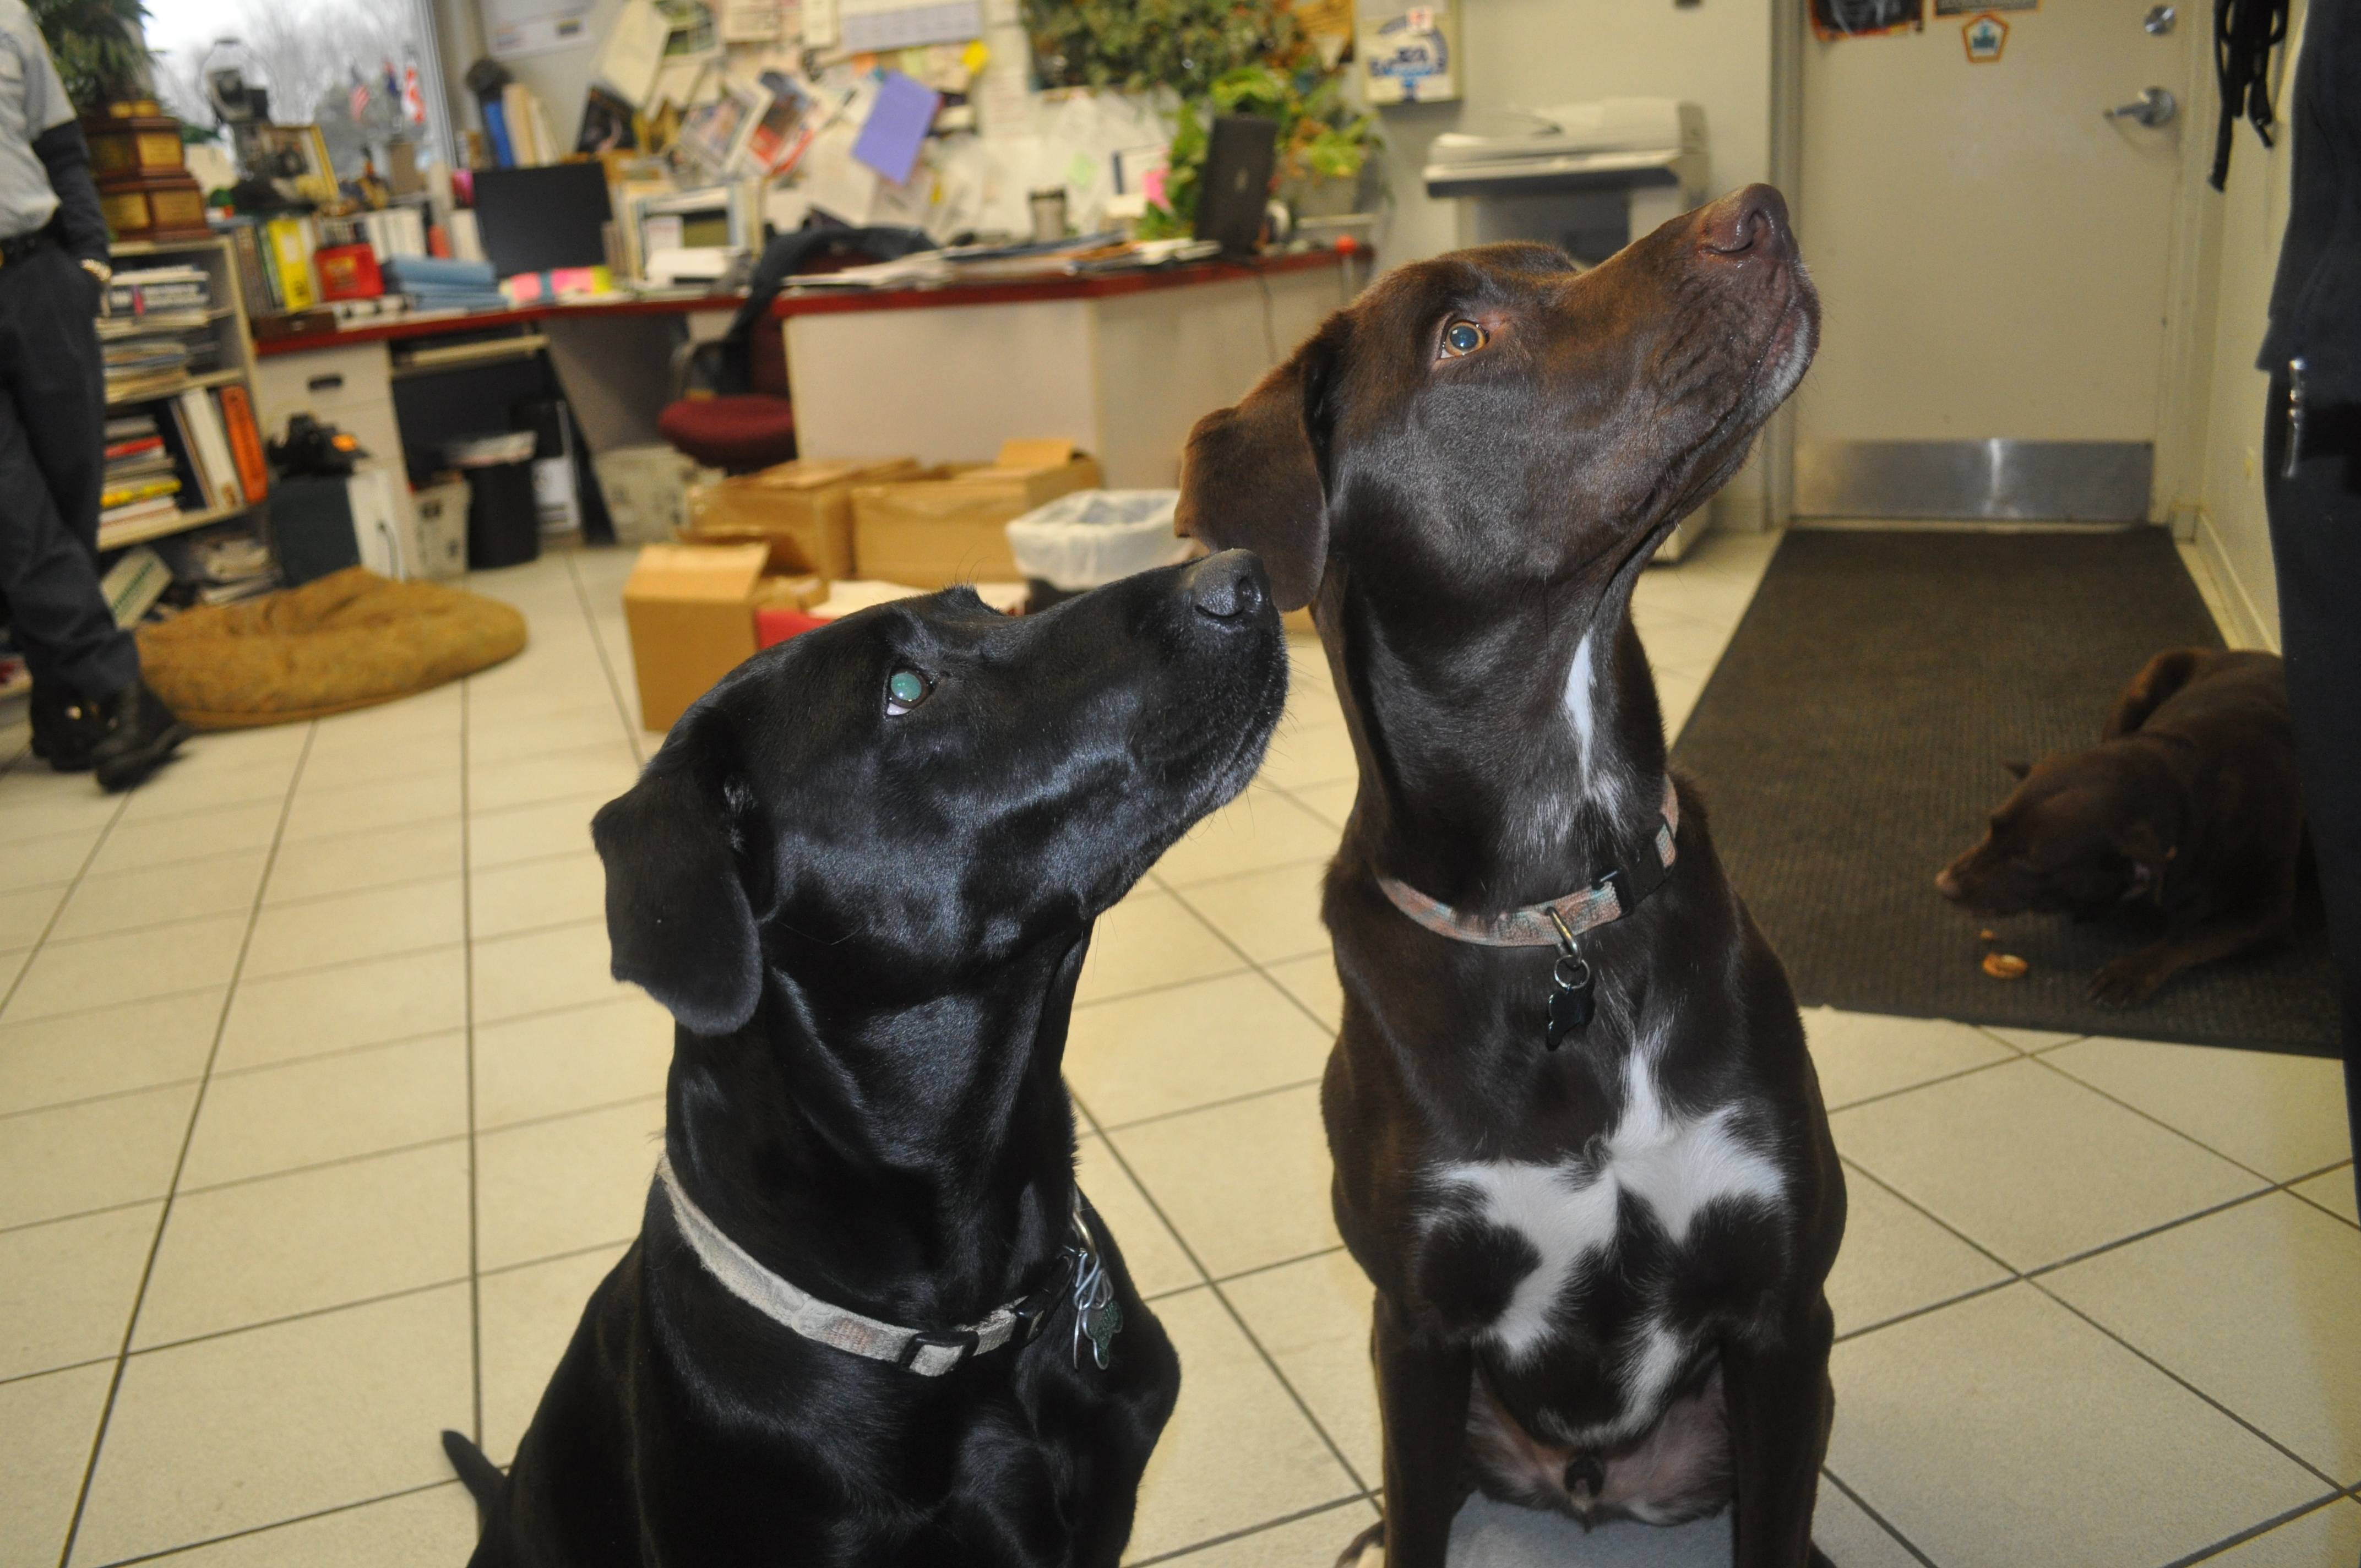 Morgan (left) and Buster (right) greet visitors at Bishop Plumbing, Inc. headquarters in Des Planes, IL